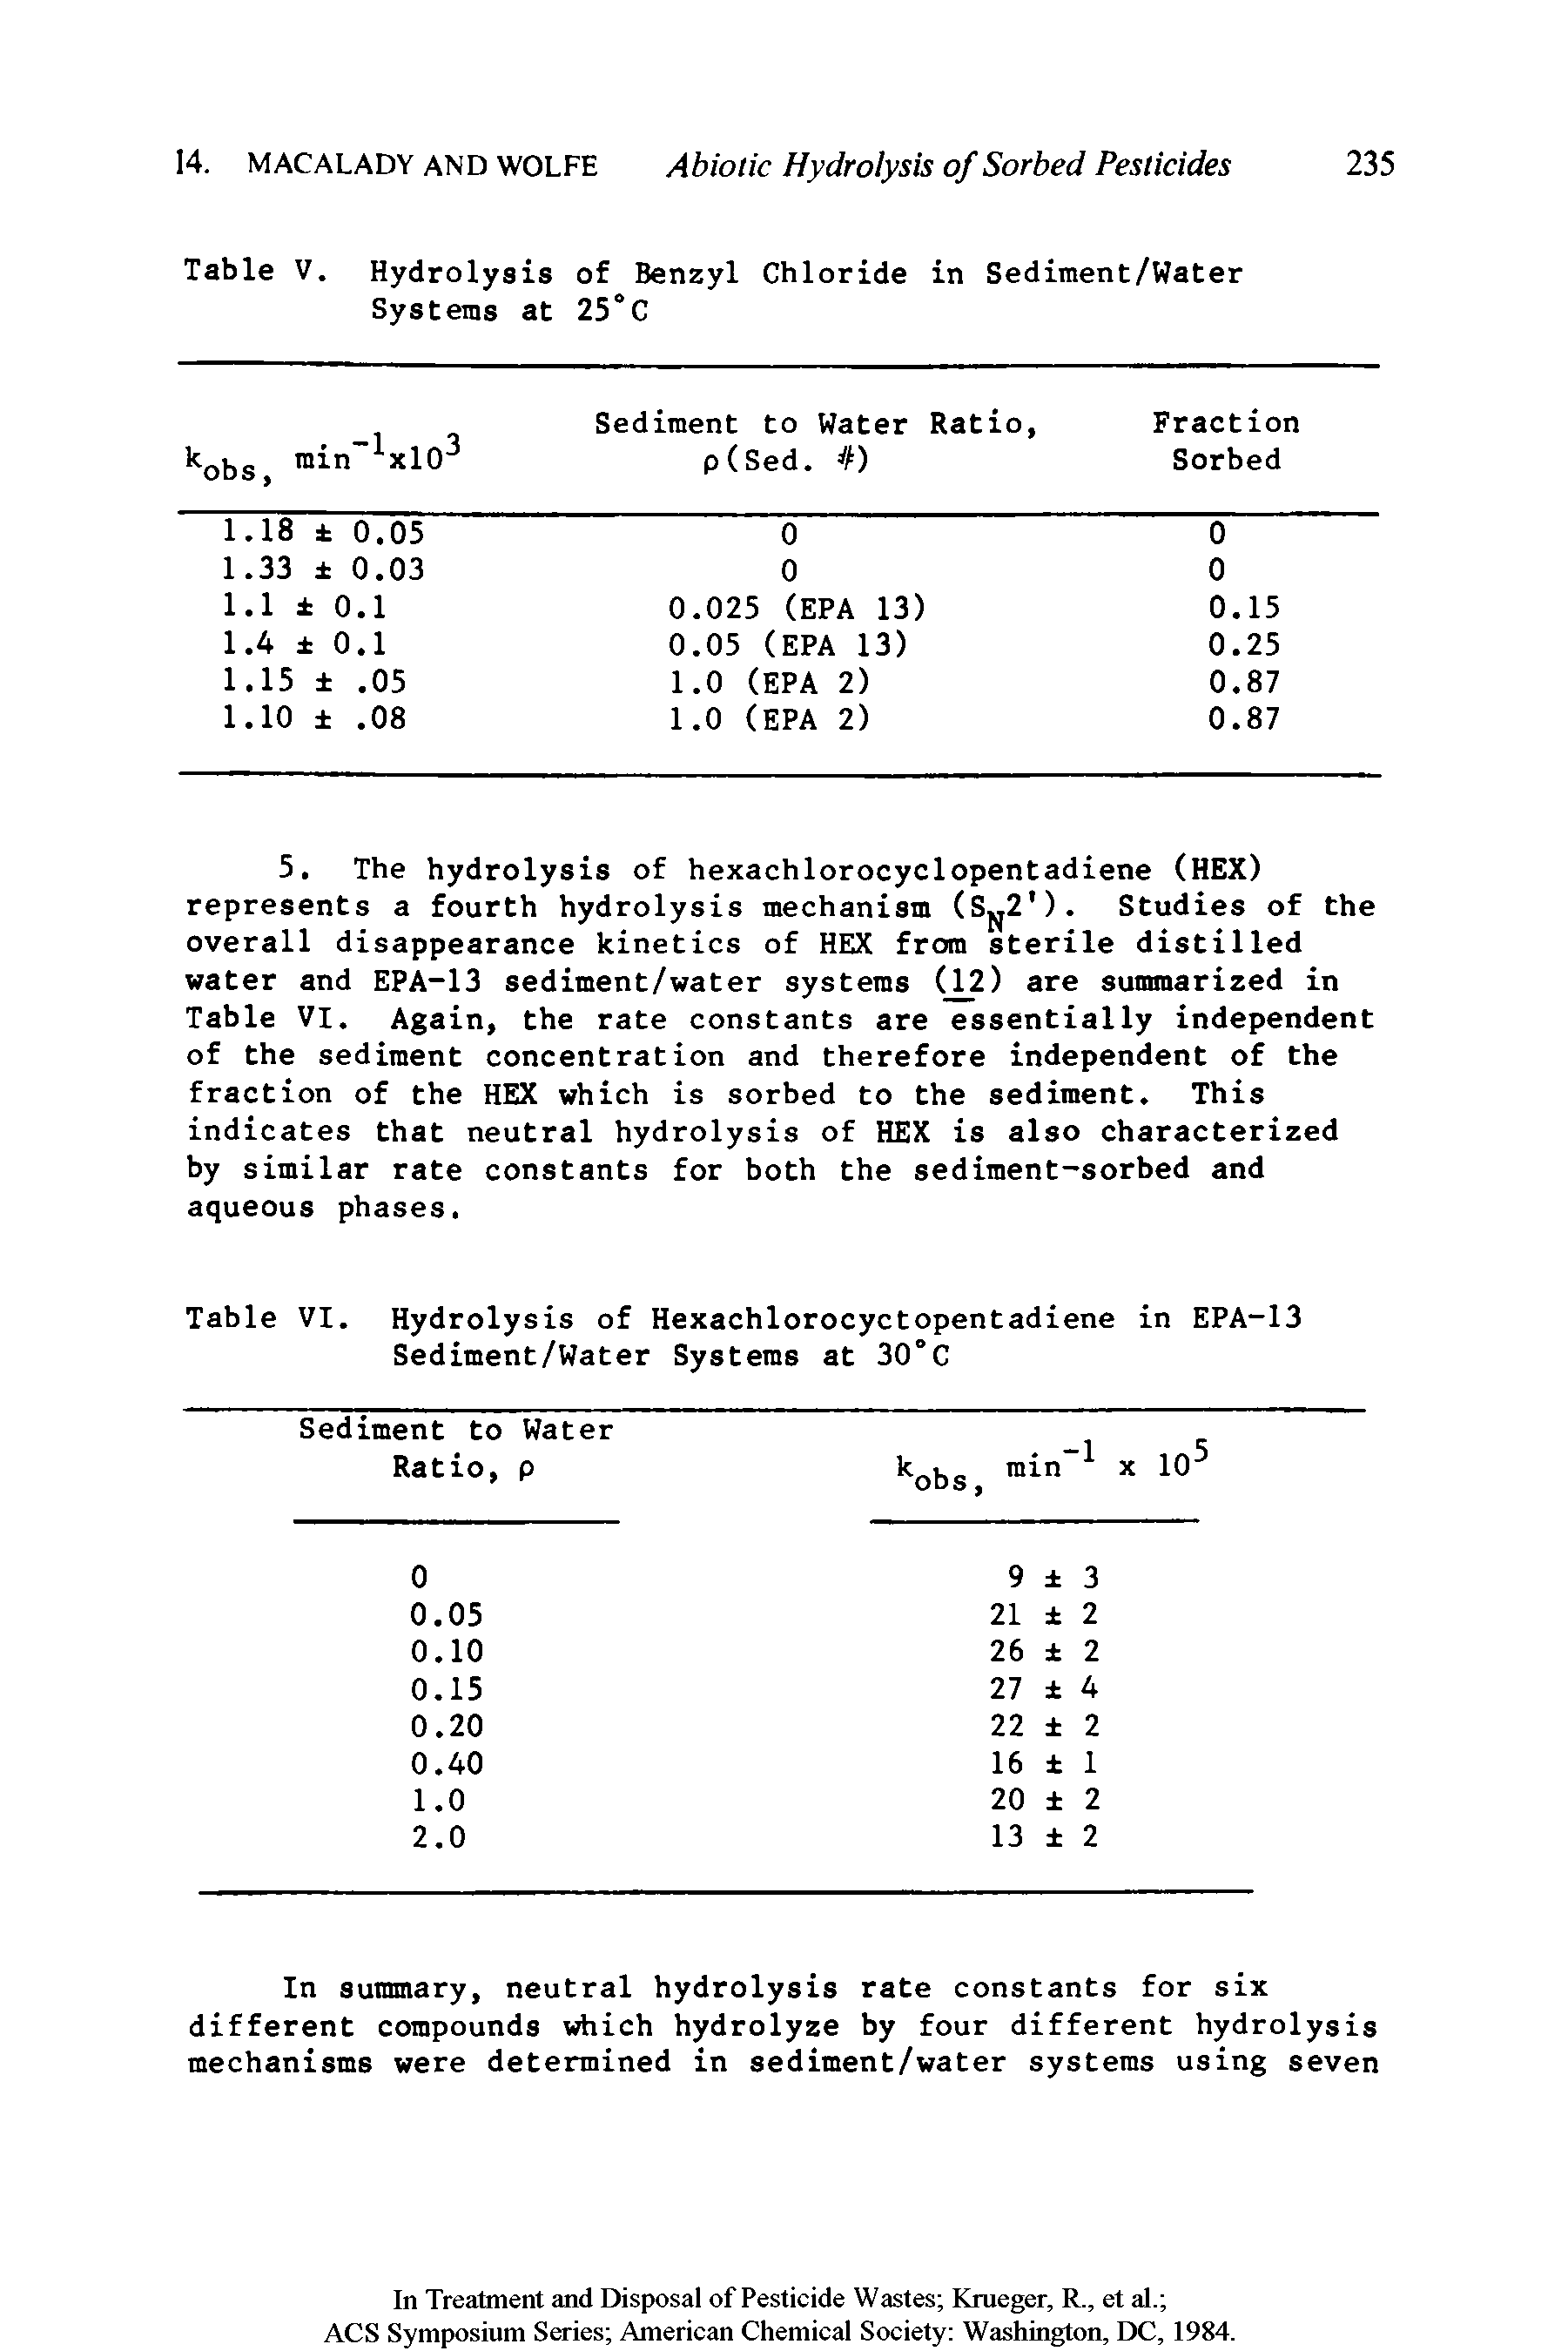 "Table VI. Hydrolysis of Hexachlorocyctopentadiene in EPA-13 <a href=""/info/water_sedimentation_vol"">Sediment/Water</a> Systems at 30°C"